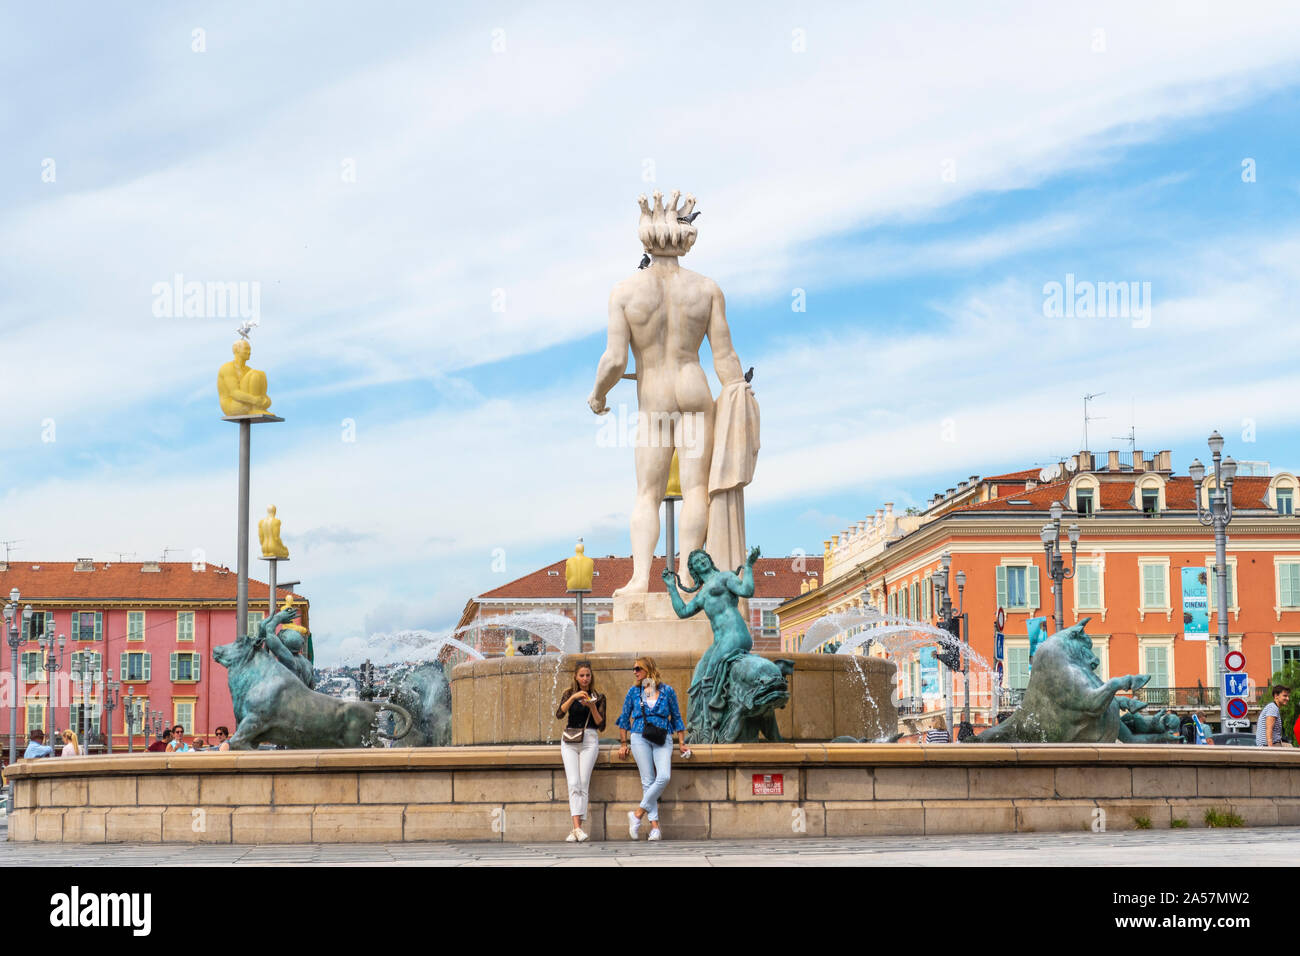 Two women relax in front of the Apollo Statue at the Fountain of the Sun in Place Massena, in the city of Nice France, on the French Riviera. Stock Photo